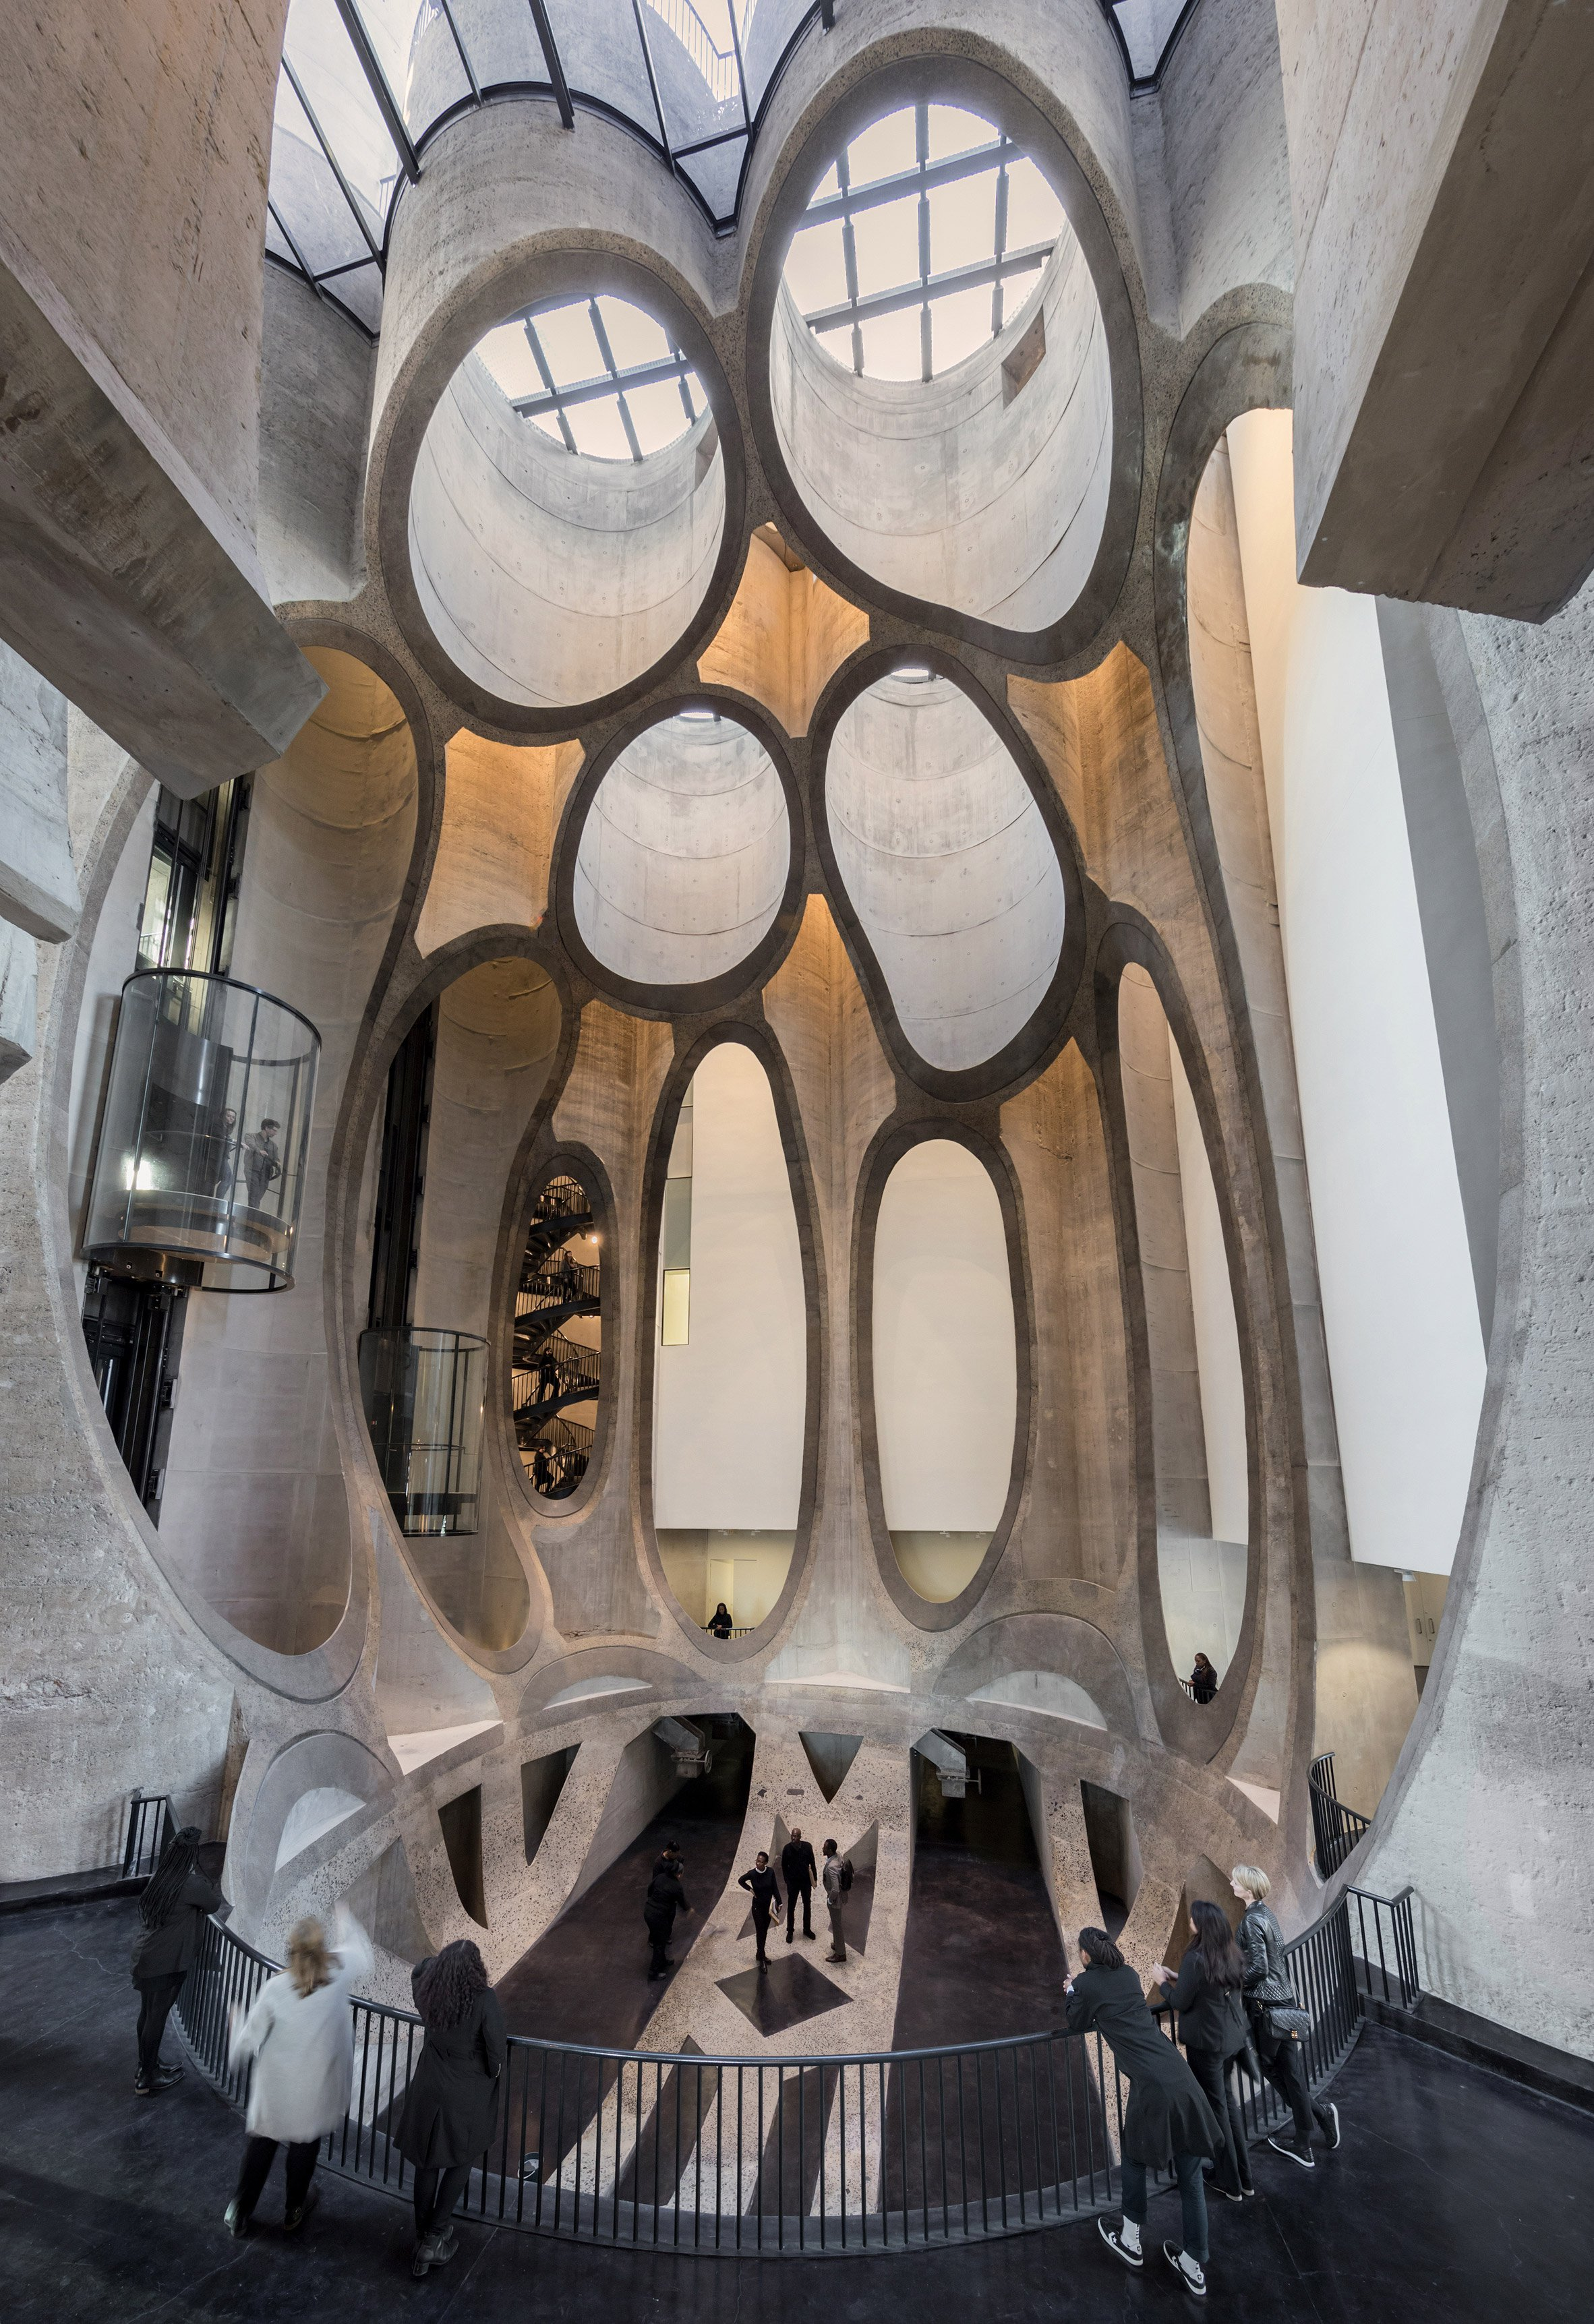 heatherwick-architecture-cultural-galleries-v-and-a-south-africa-interior_dezeen_2364_col_0.jpg